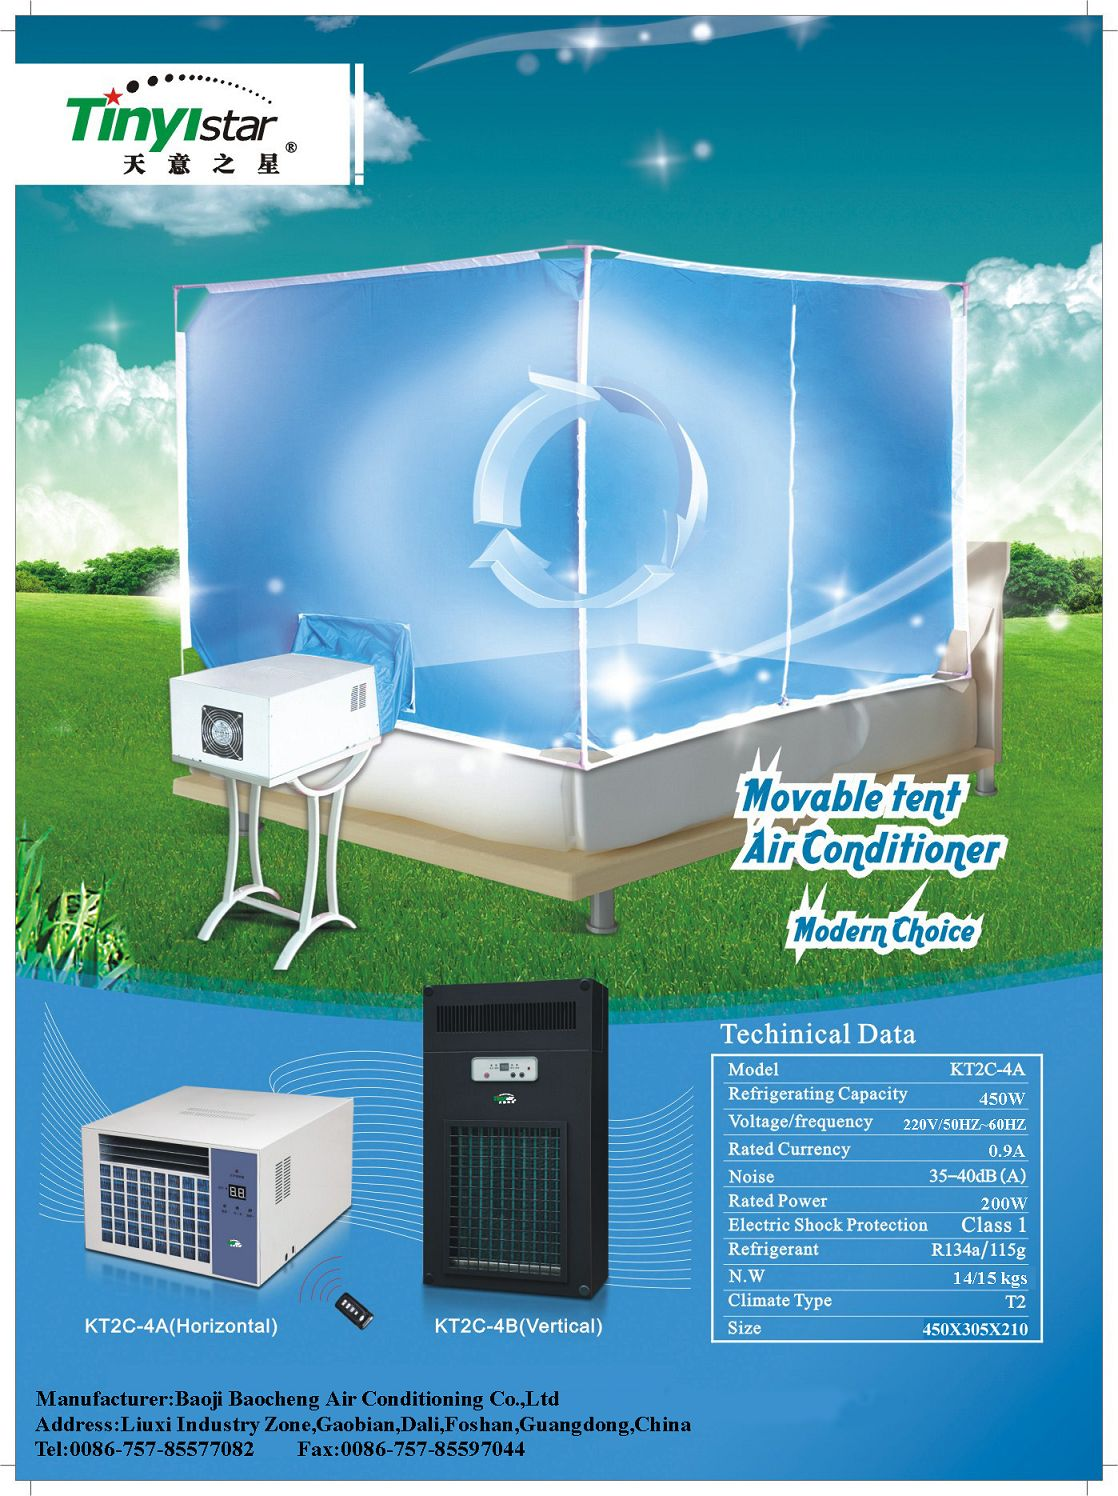 sc 1 th 260 & Tent Air Conditioner (KT2C-4A)